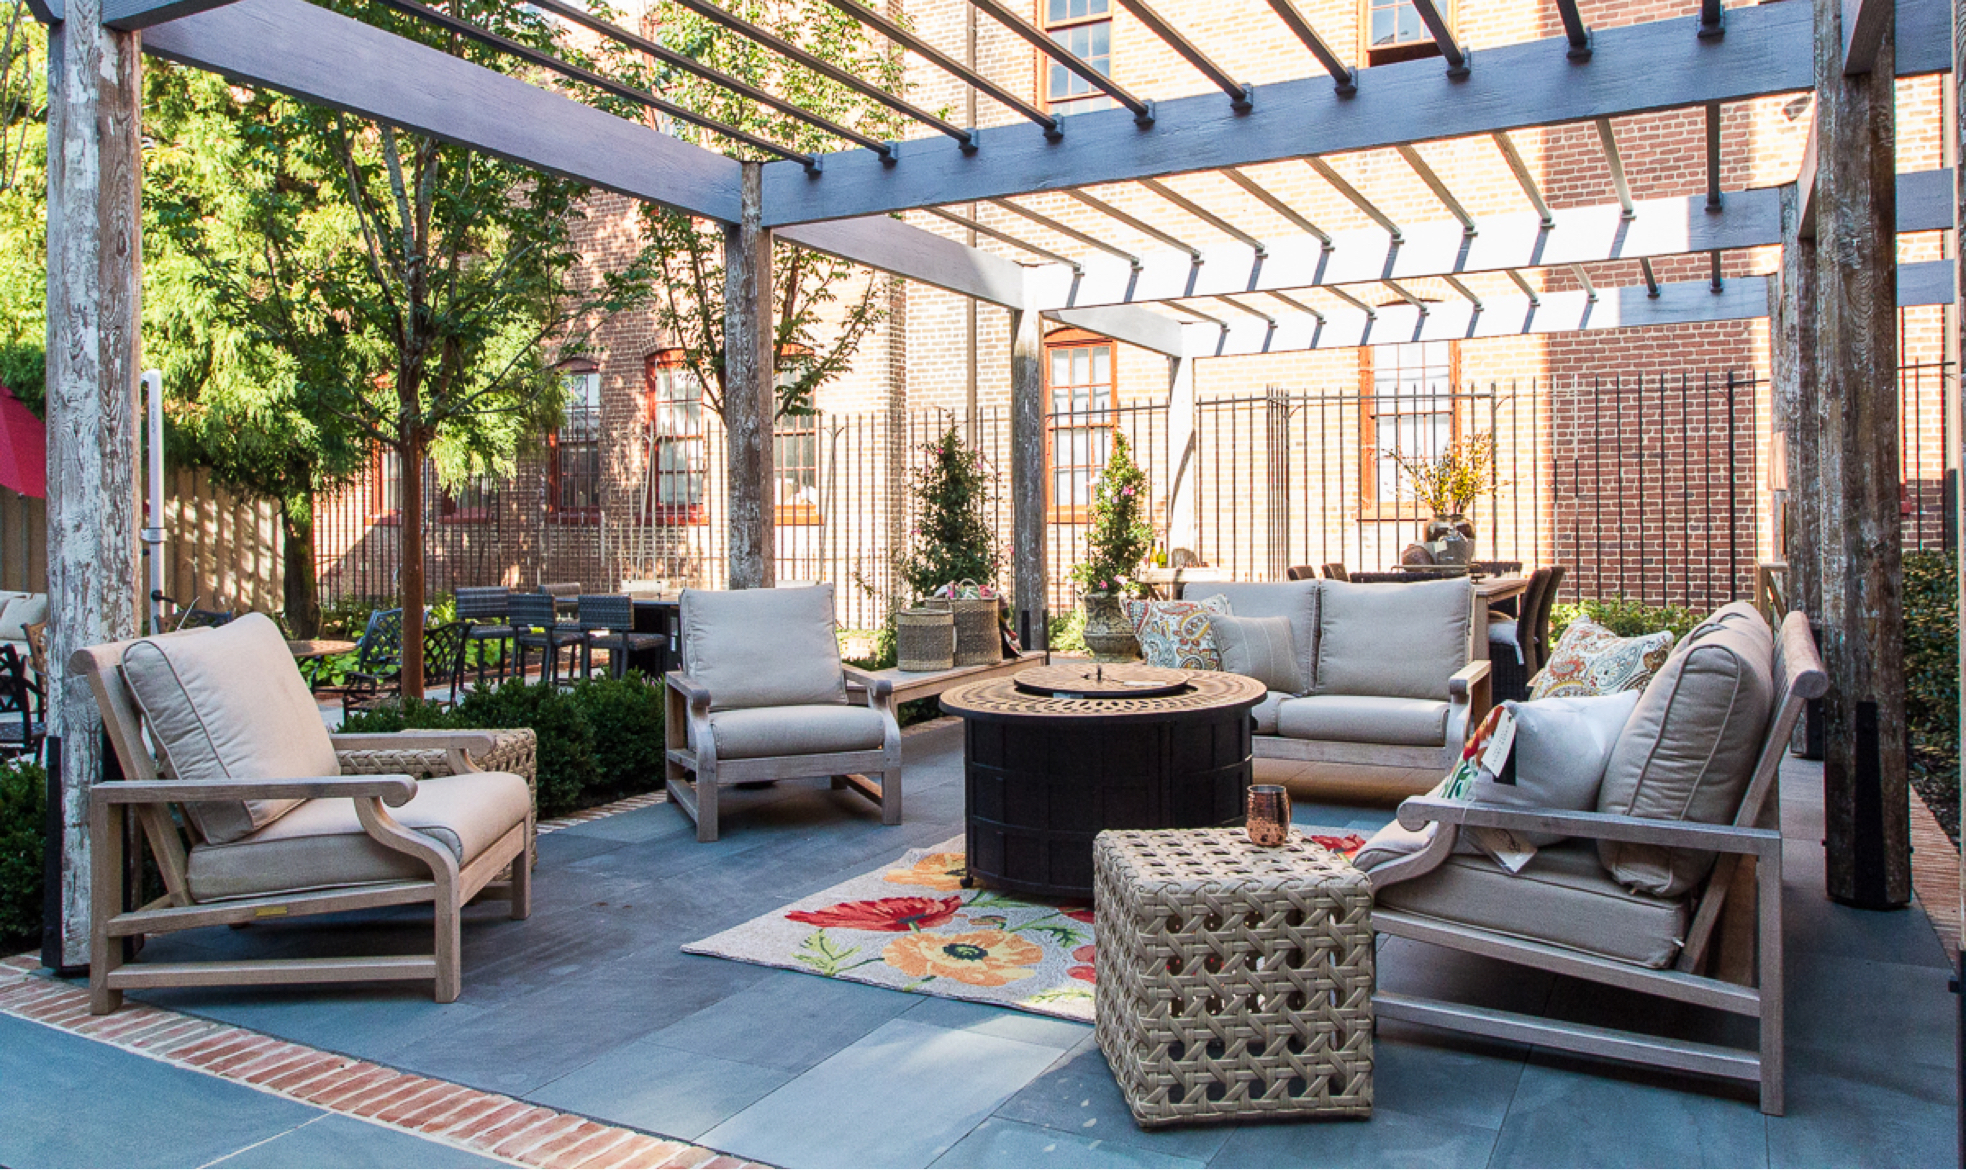 Explore Our Outdoor Furniture